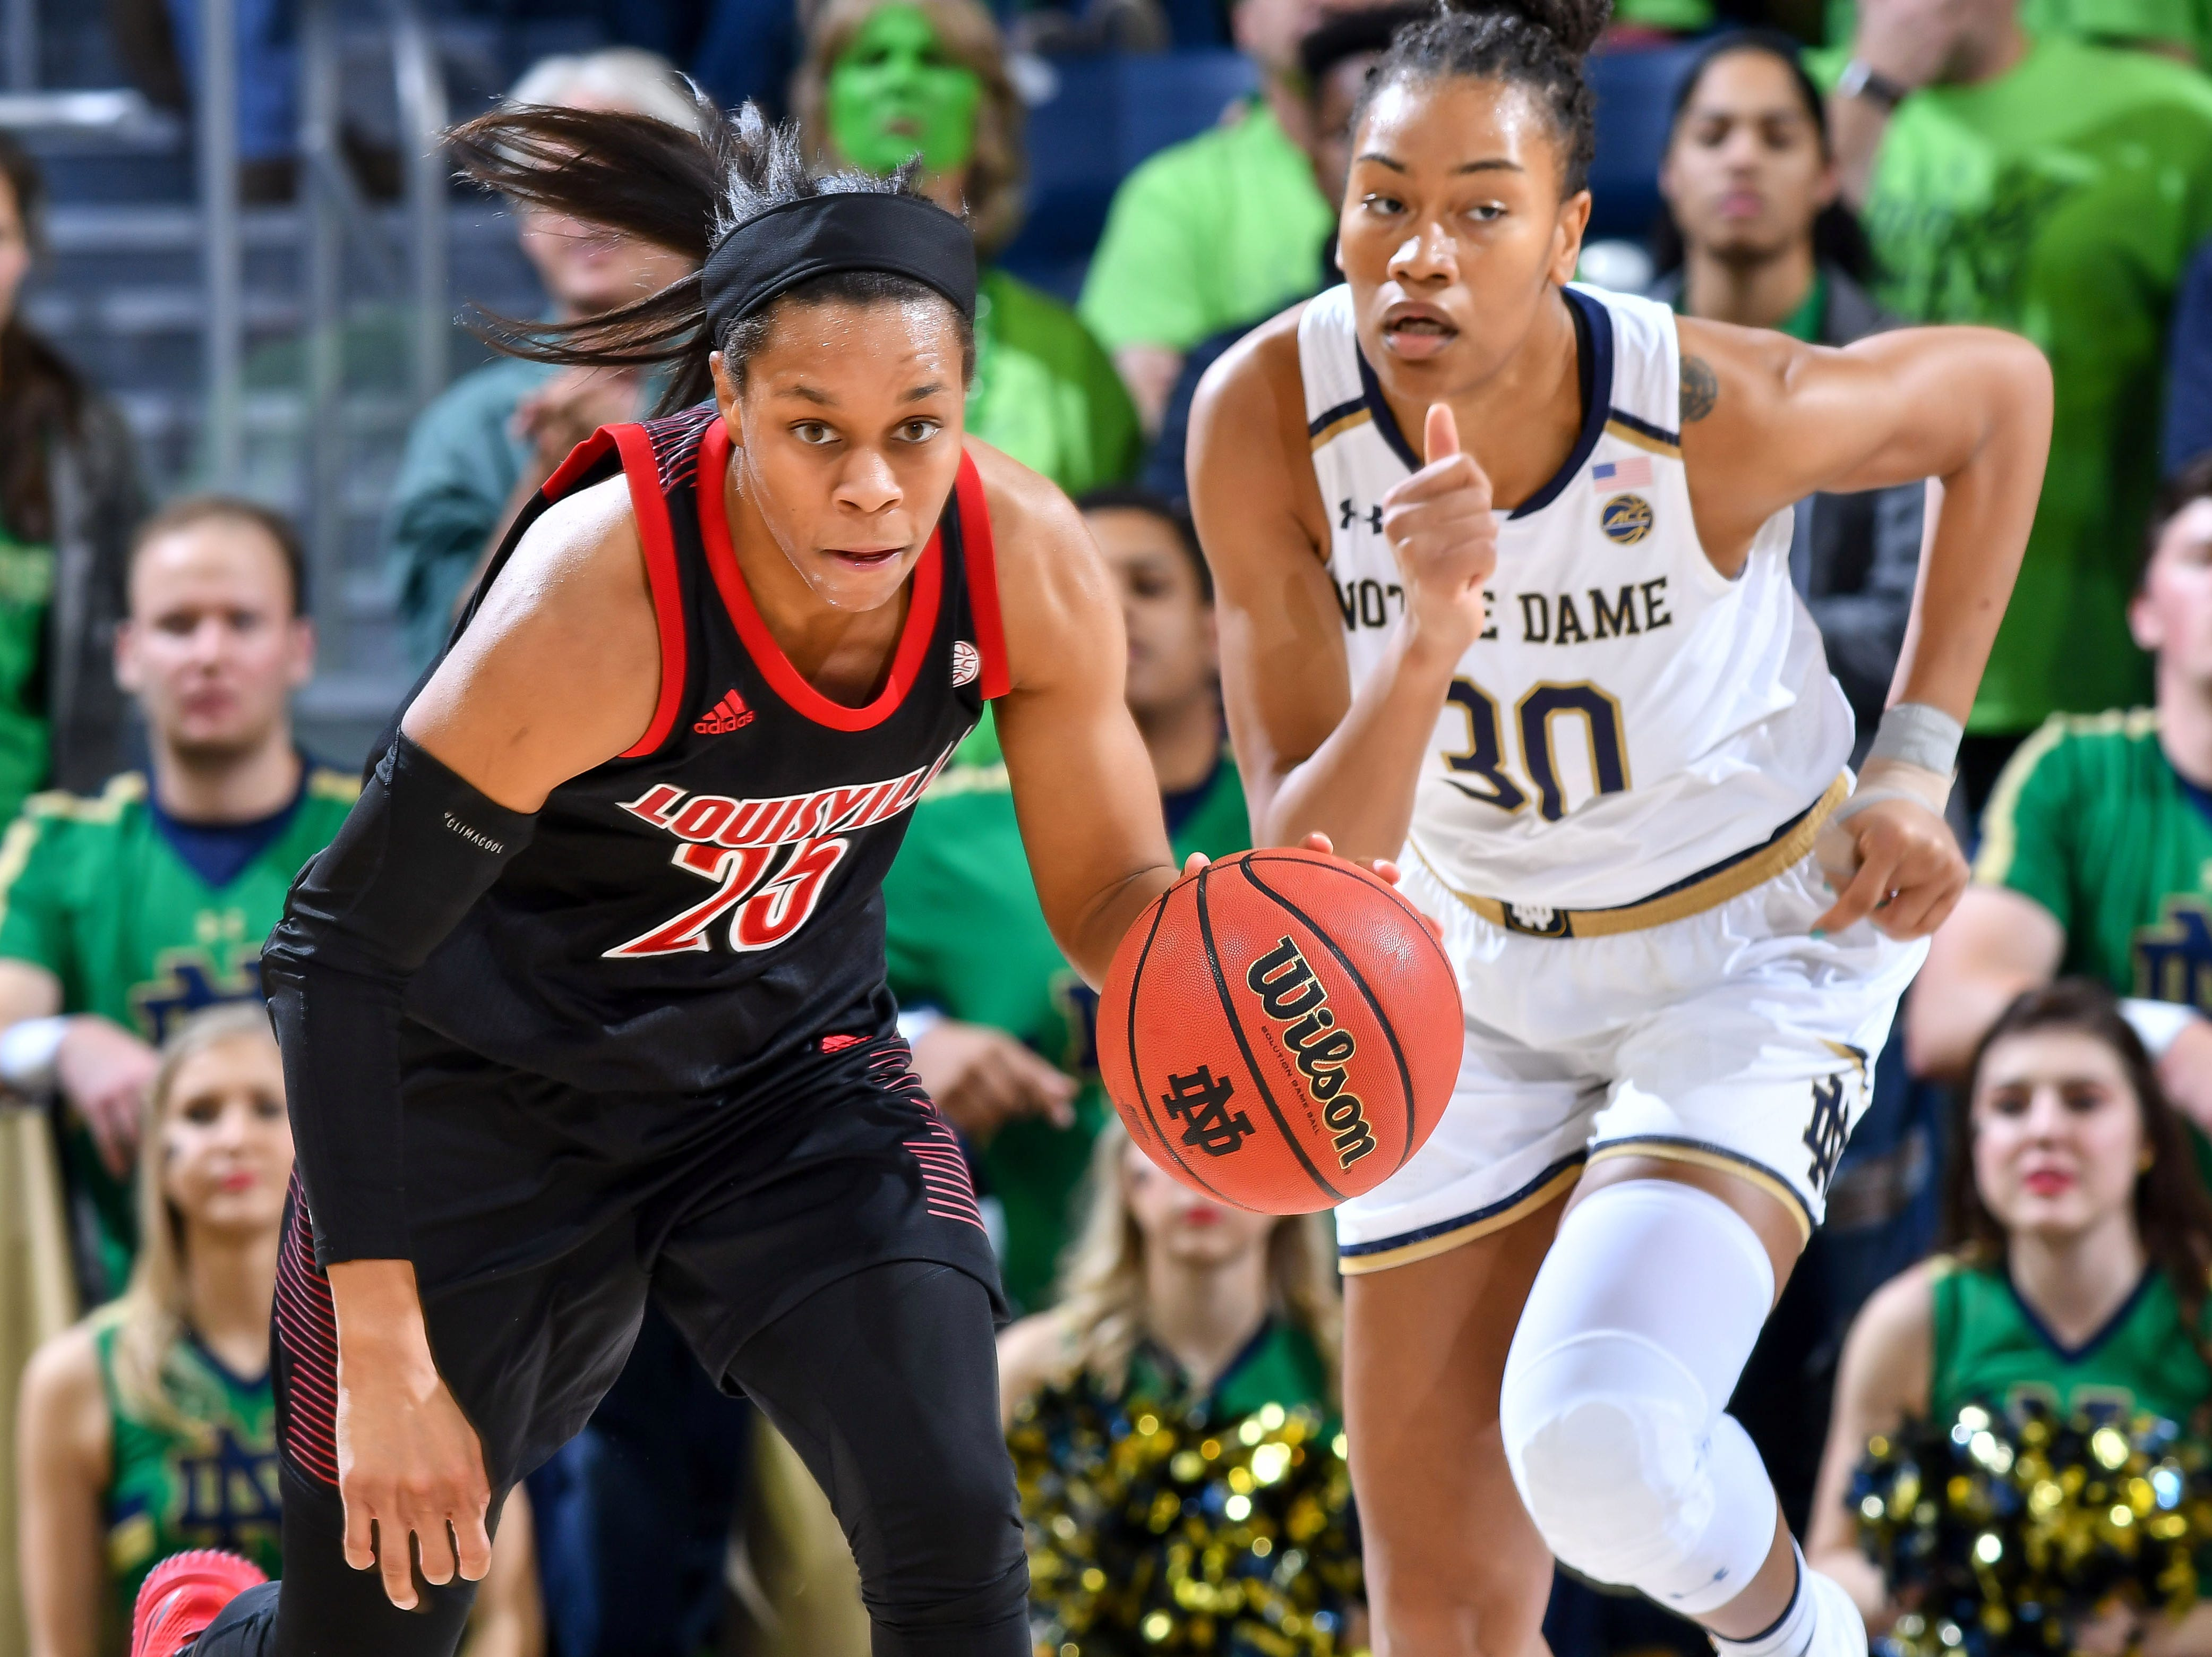 Jan 10, 2019; South Bend, IN, USA; Louisville Cardinals guard Asia Durr (25) dribbles as Notre Dame Fighting Irish center Mikayla Vaughn (30) pursues in the first half at the Purcell Pavilion. Mandatory Credit: Matt Cashore-USA TODAY Sports